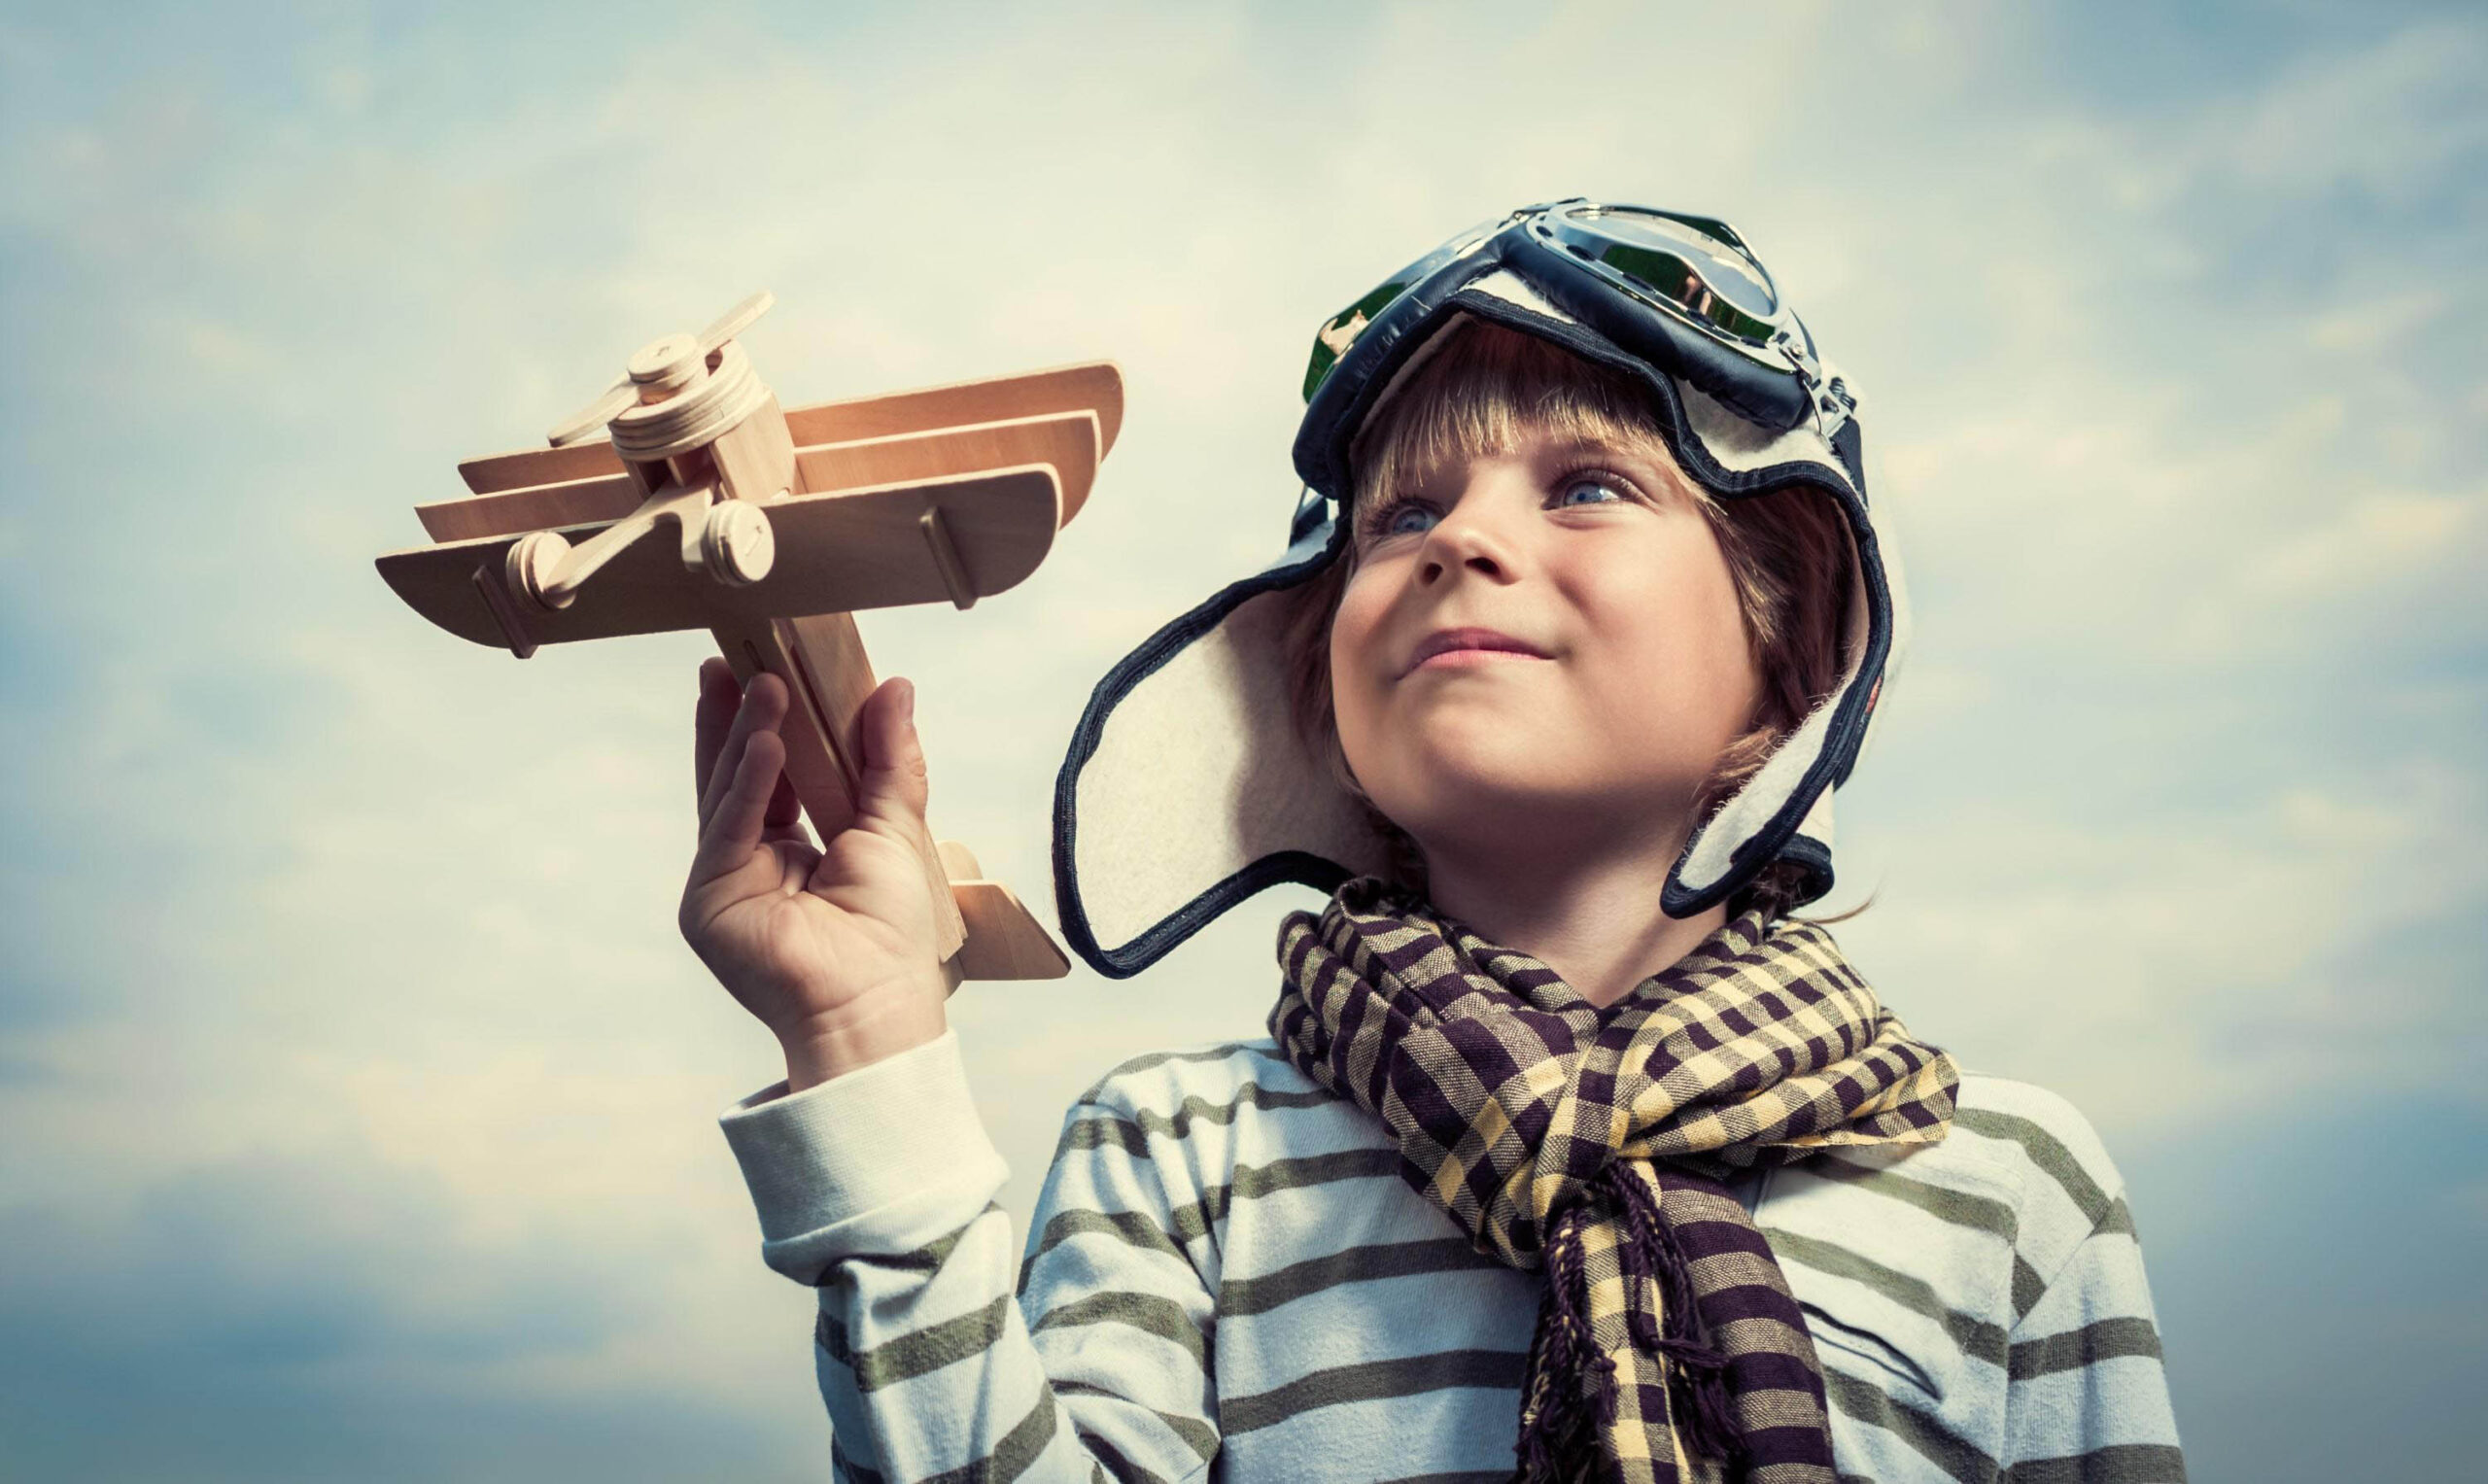 zbigstock-Pilot-with-airplane-on-a-backg-50984150 (Custom)